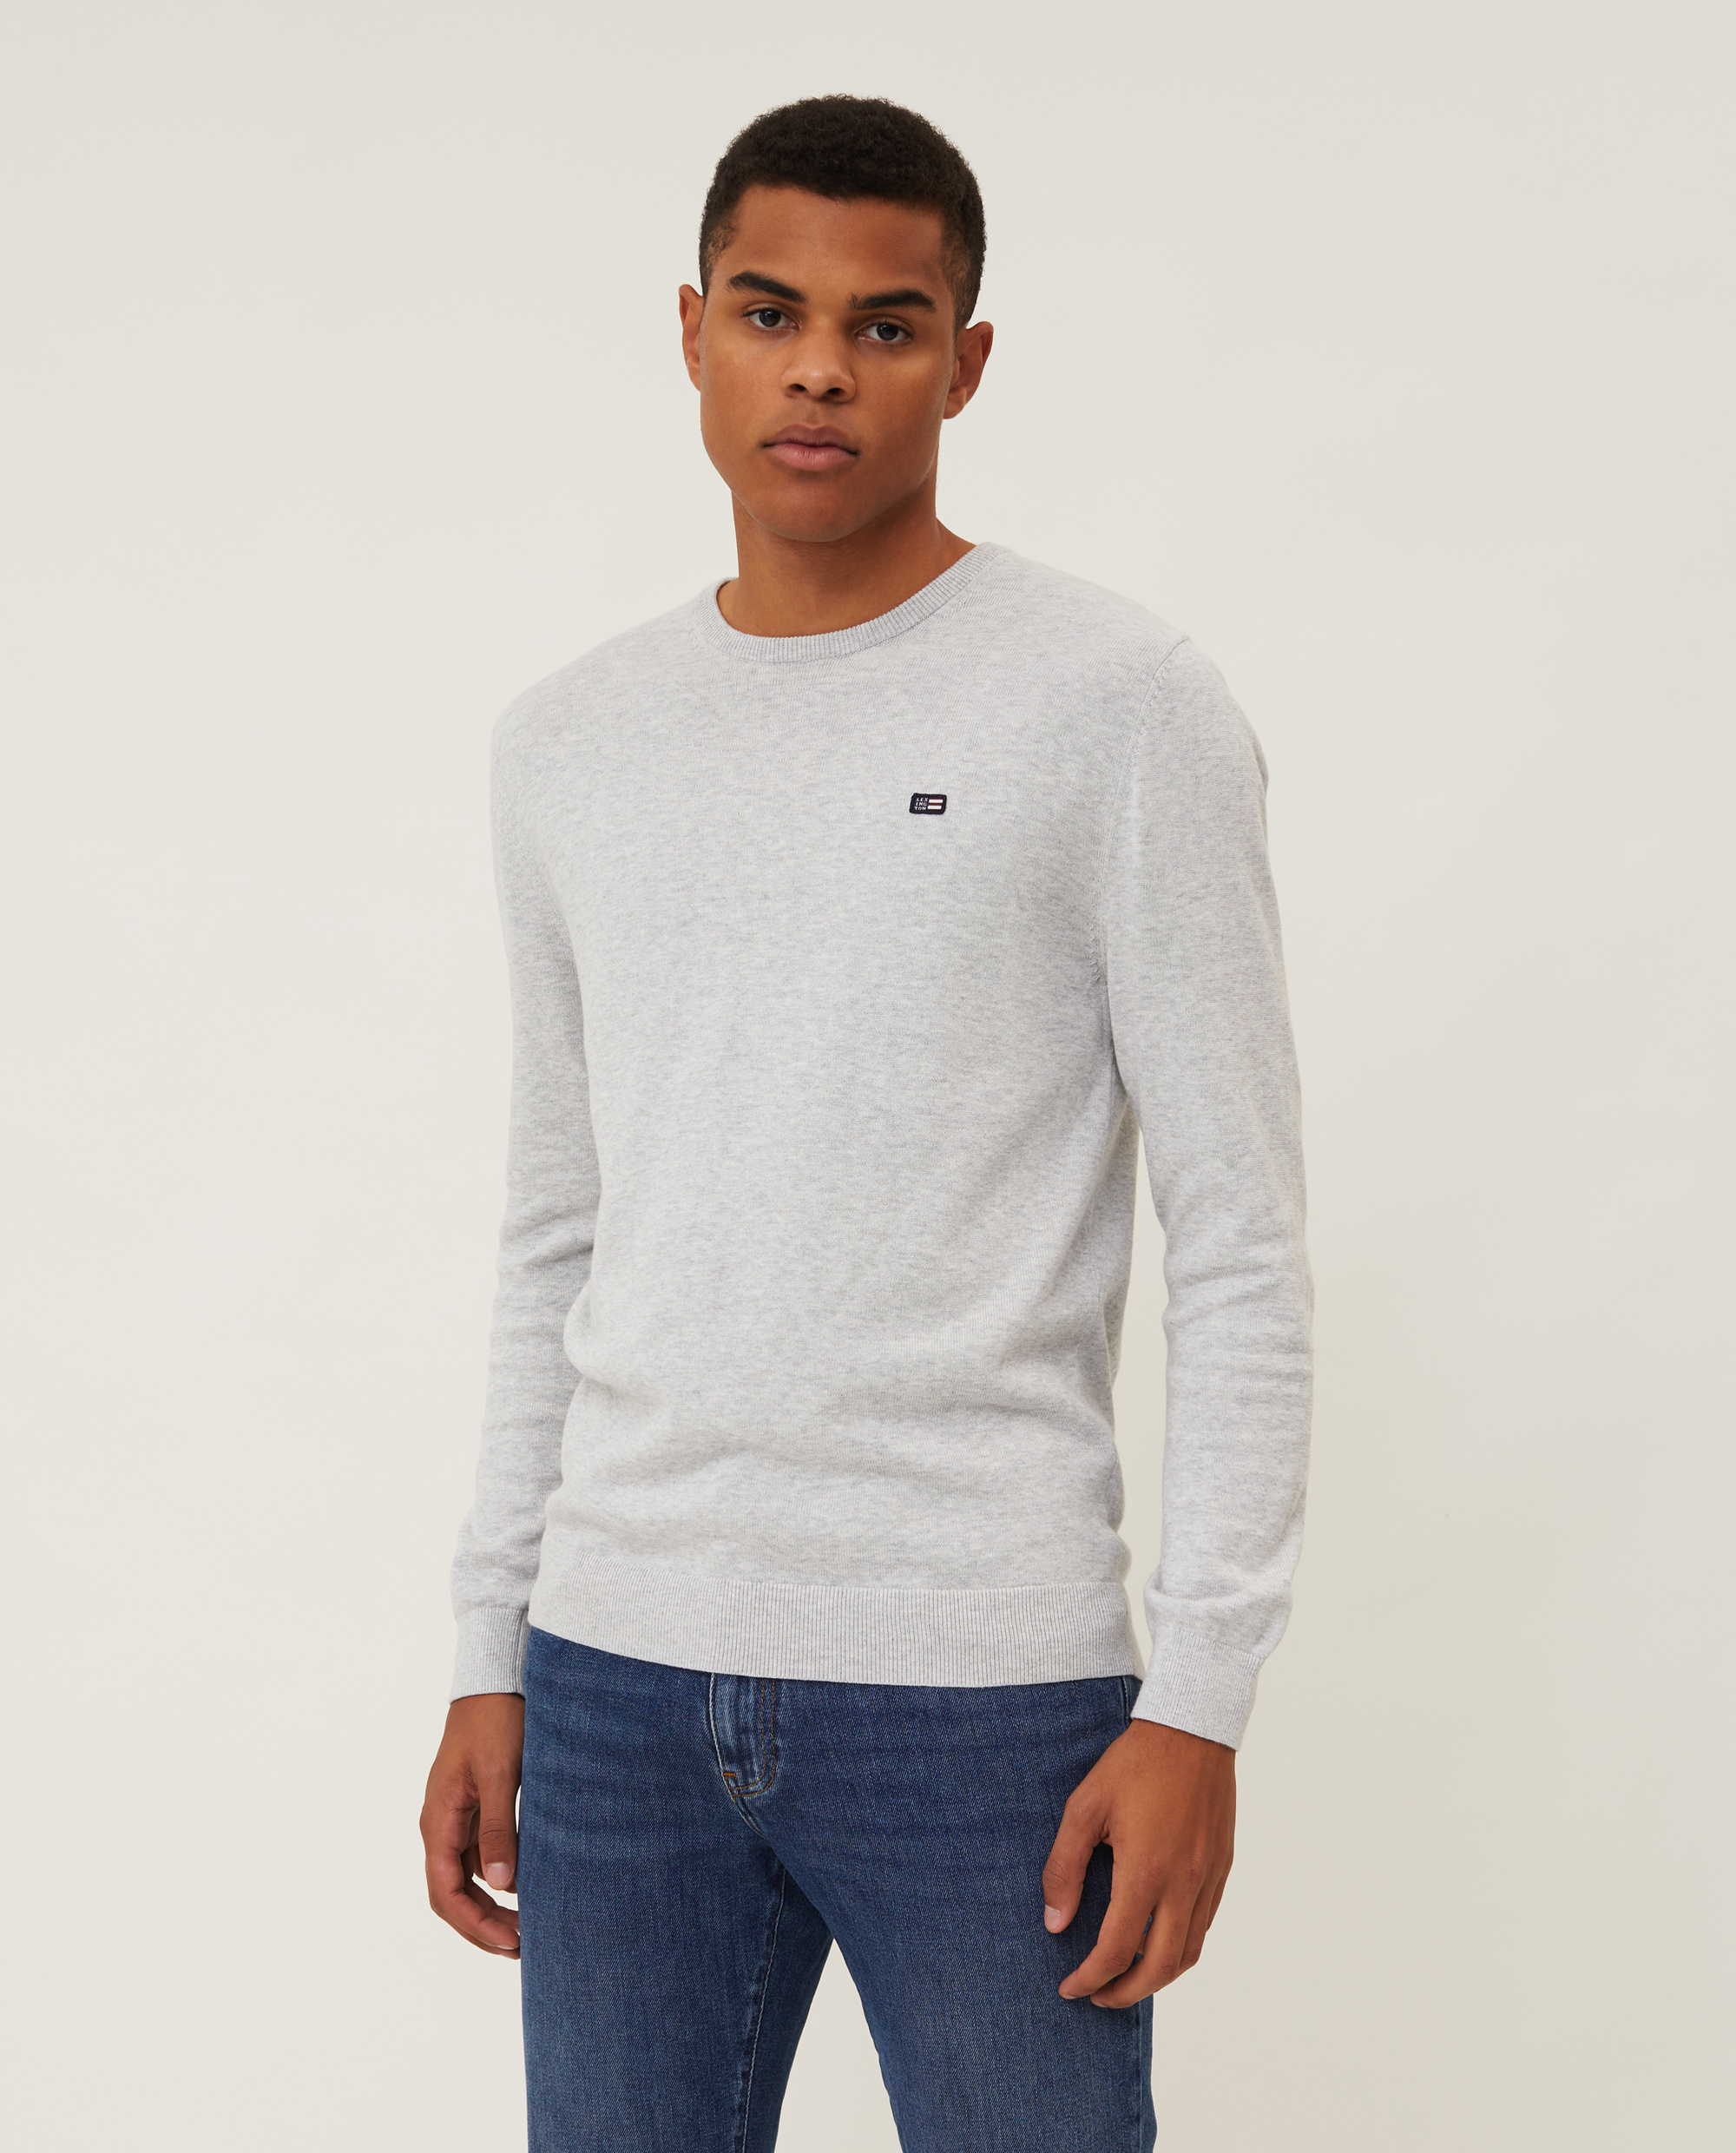 Bradley Organic Cotton Crew Neck Sweater, Light Gray Melange